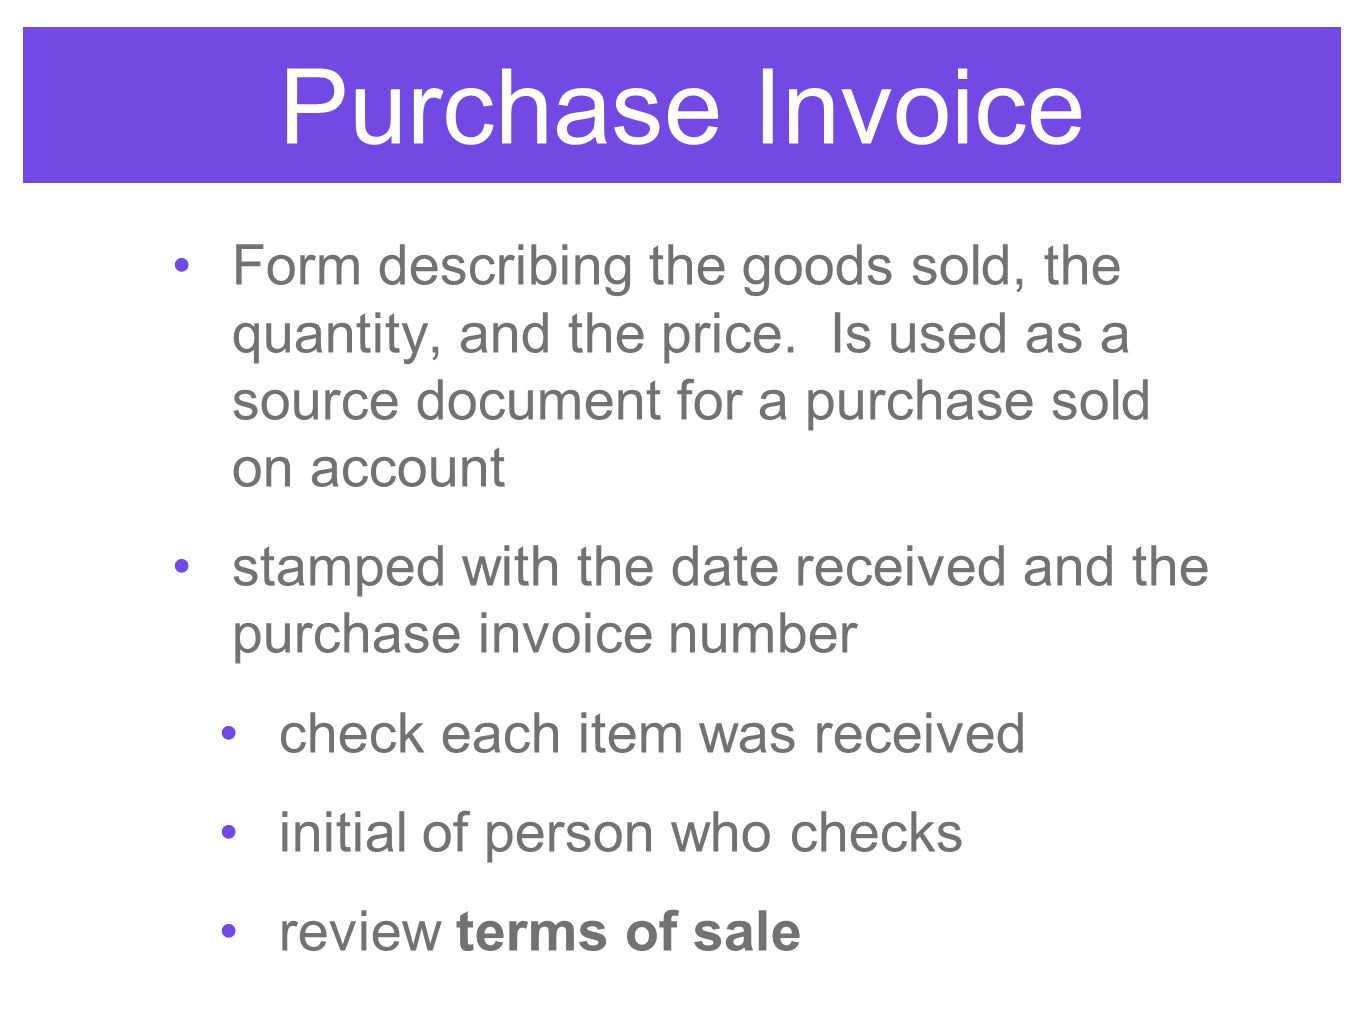 Purchase Invoice Form describing the goods sold, the quantity, and the price. Is used as a source document for a purchase sold on account.